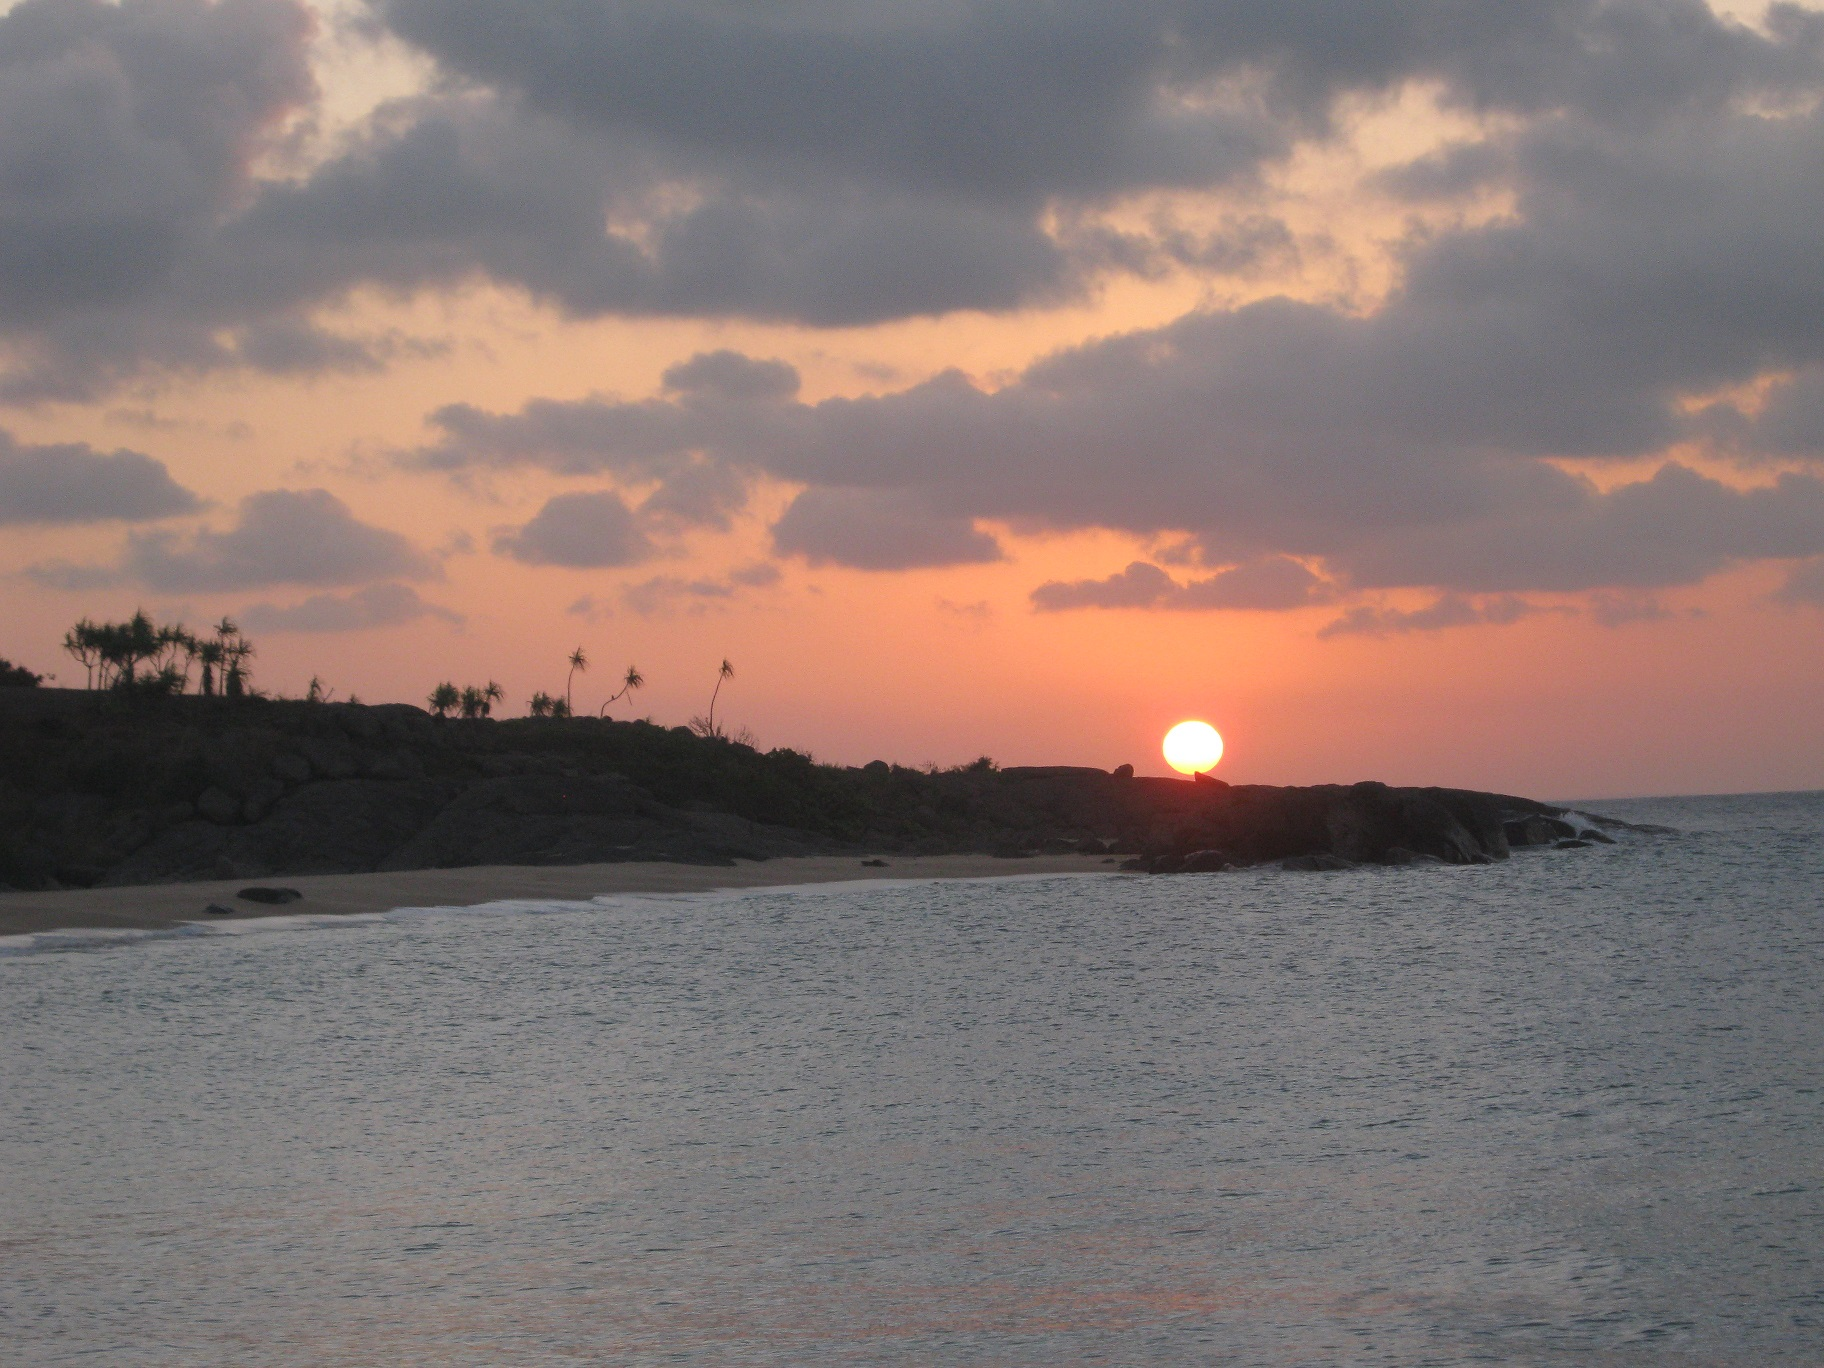 2.Sunset at Bremer Islandv2